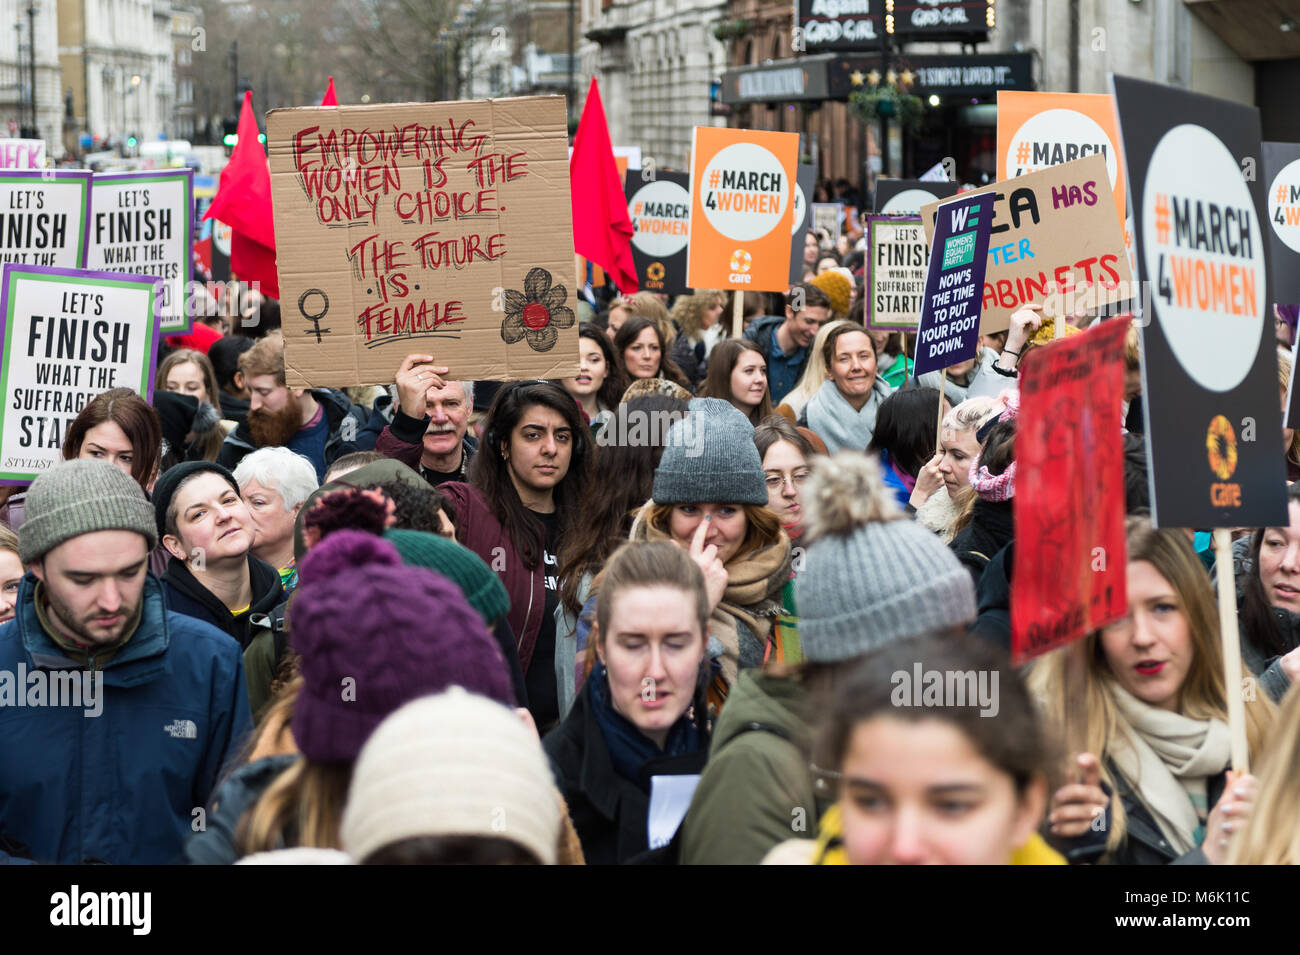 London, UK. 4th March, 2018. Thousands of people including politicians, celebrities and activists marched from the - Stock Image